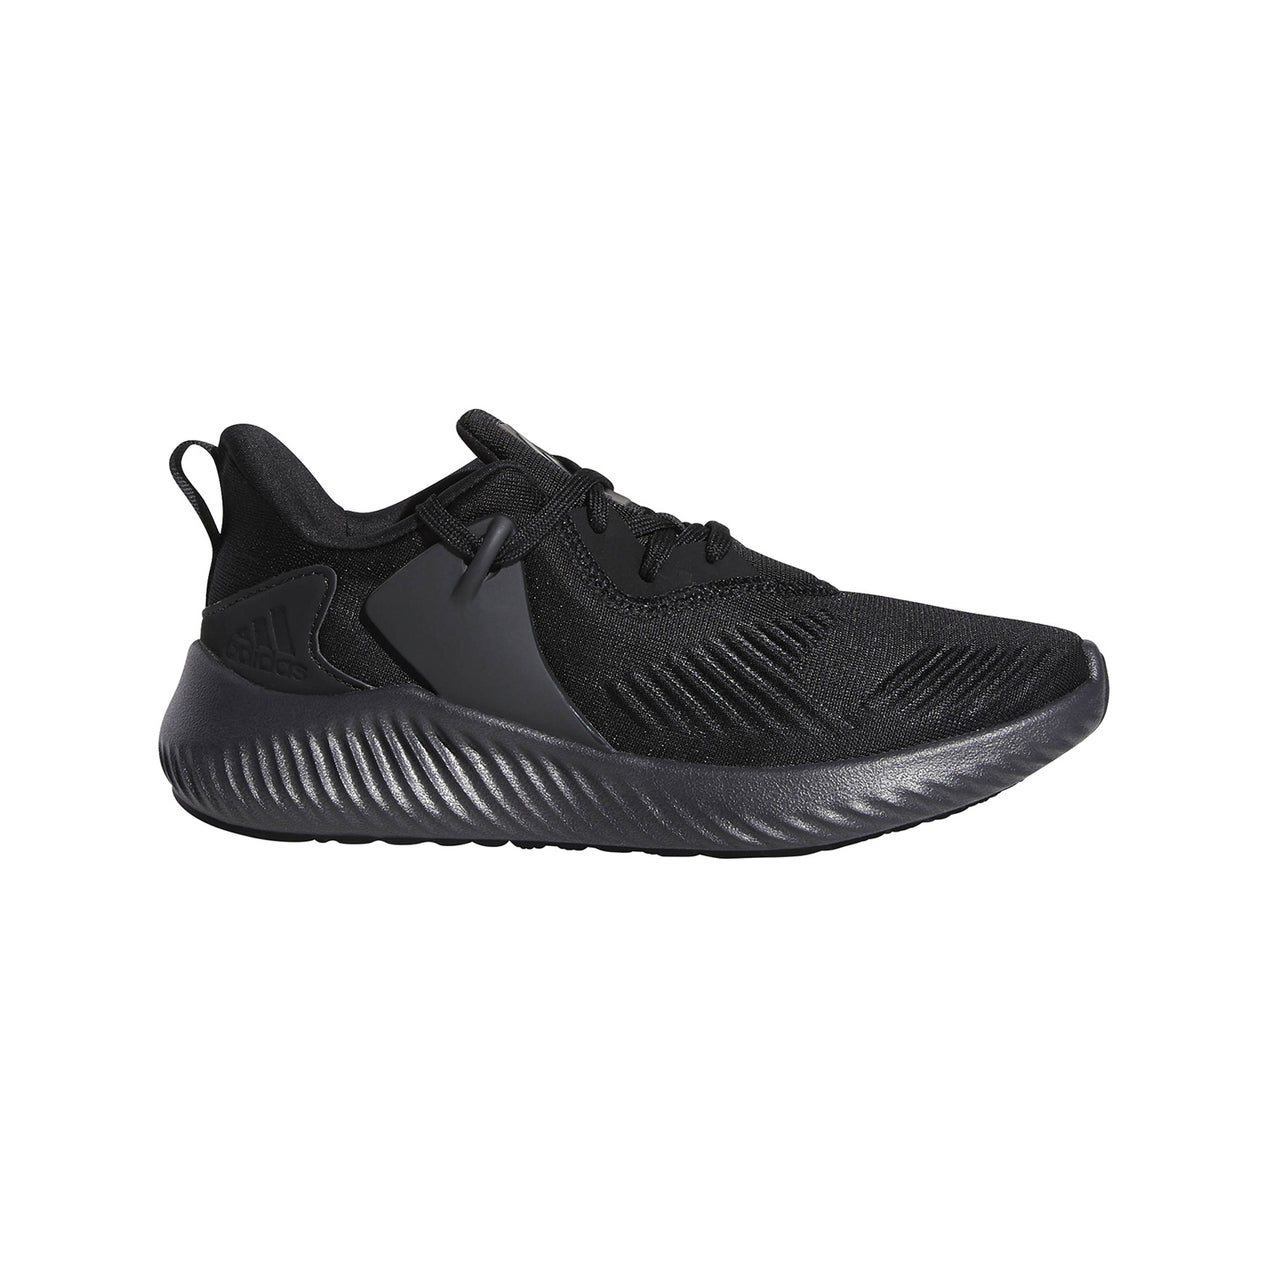 0036241629b91 Adidas Alphabounce Rc 2 Shoes - Kids